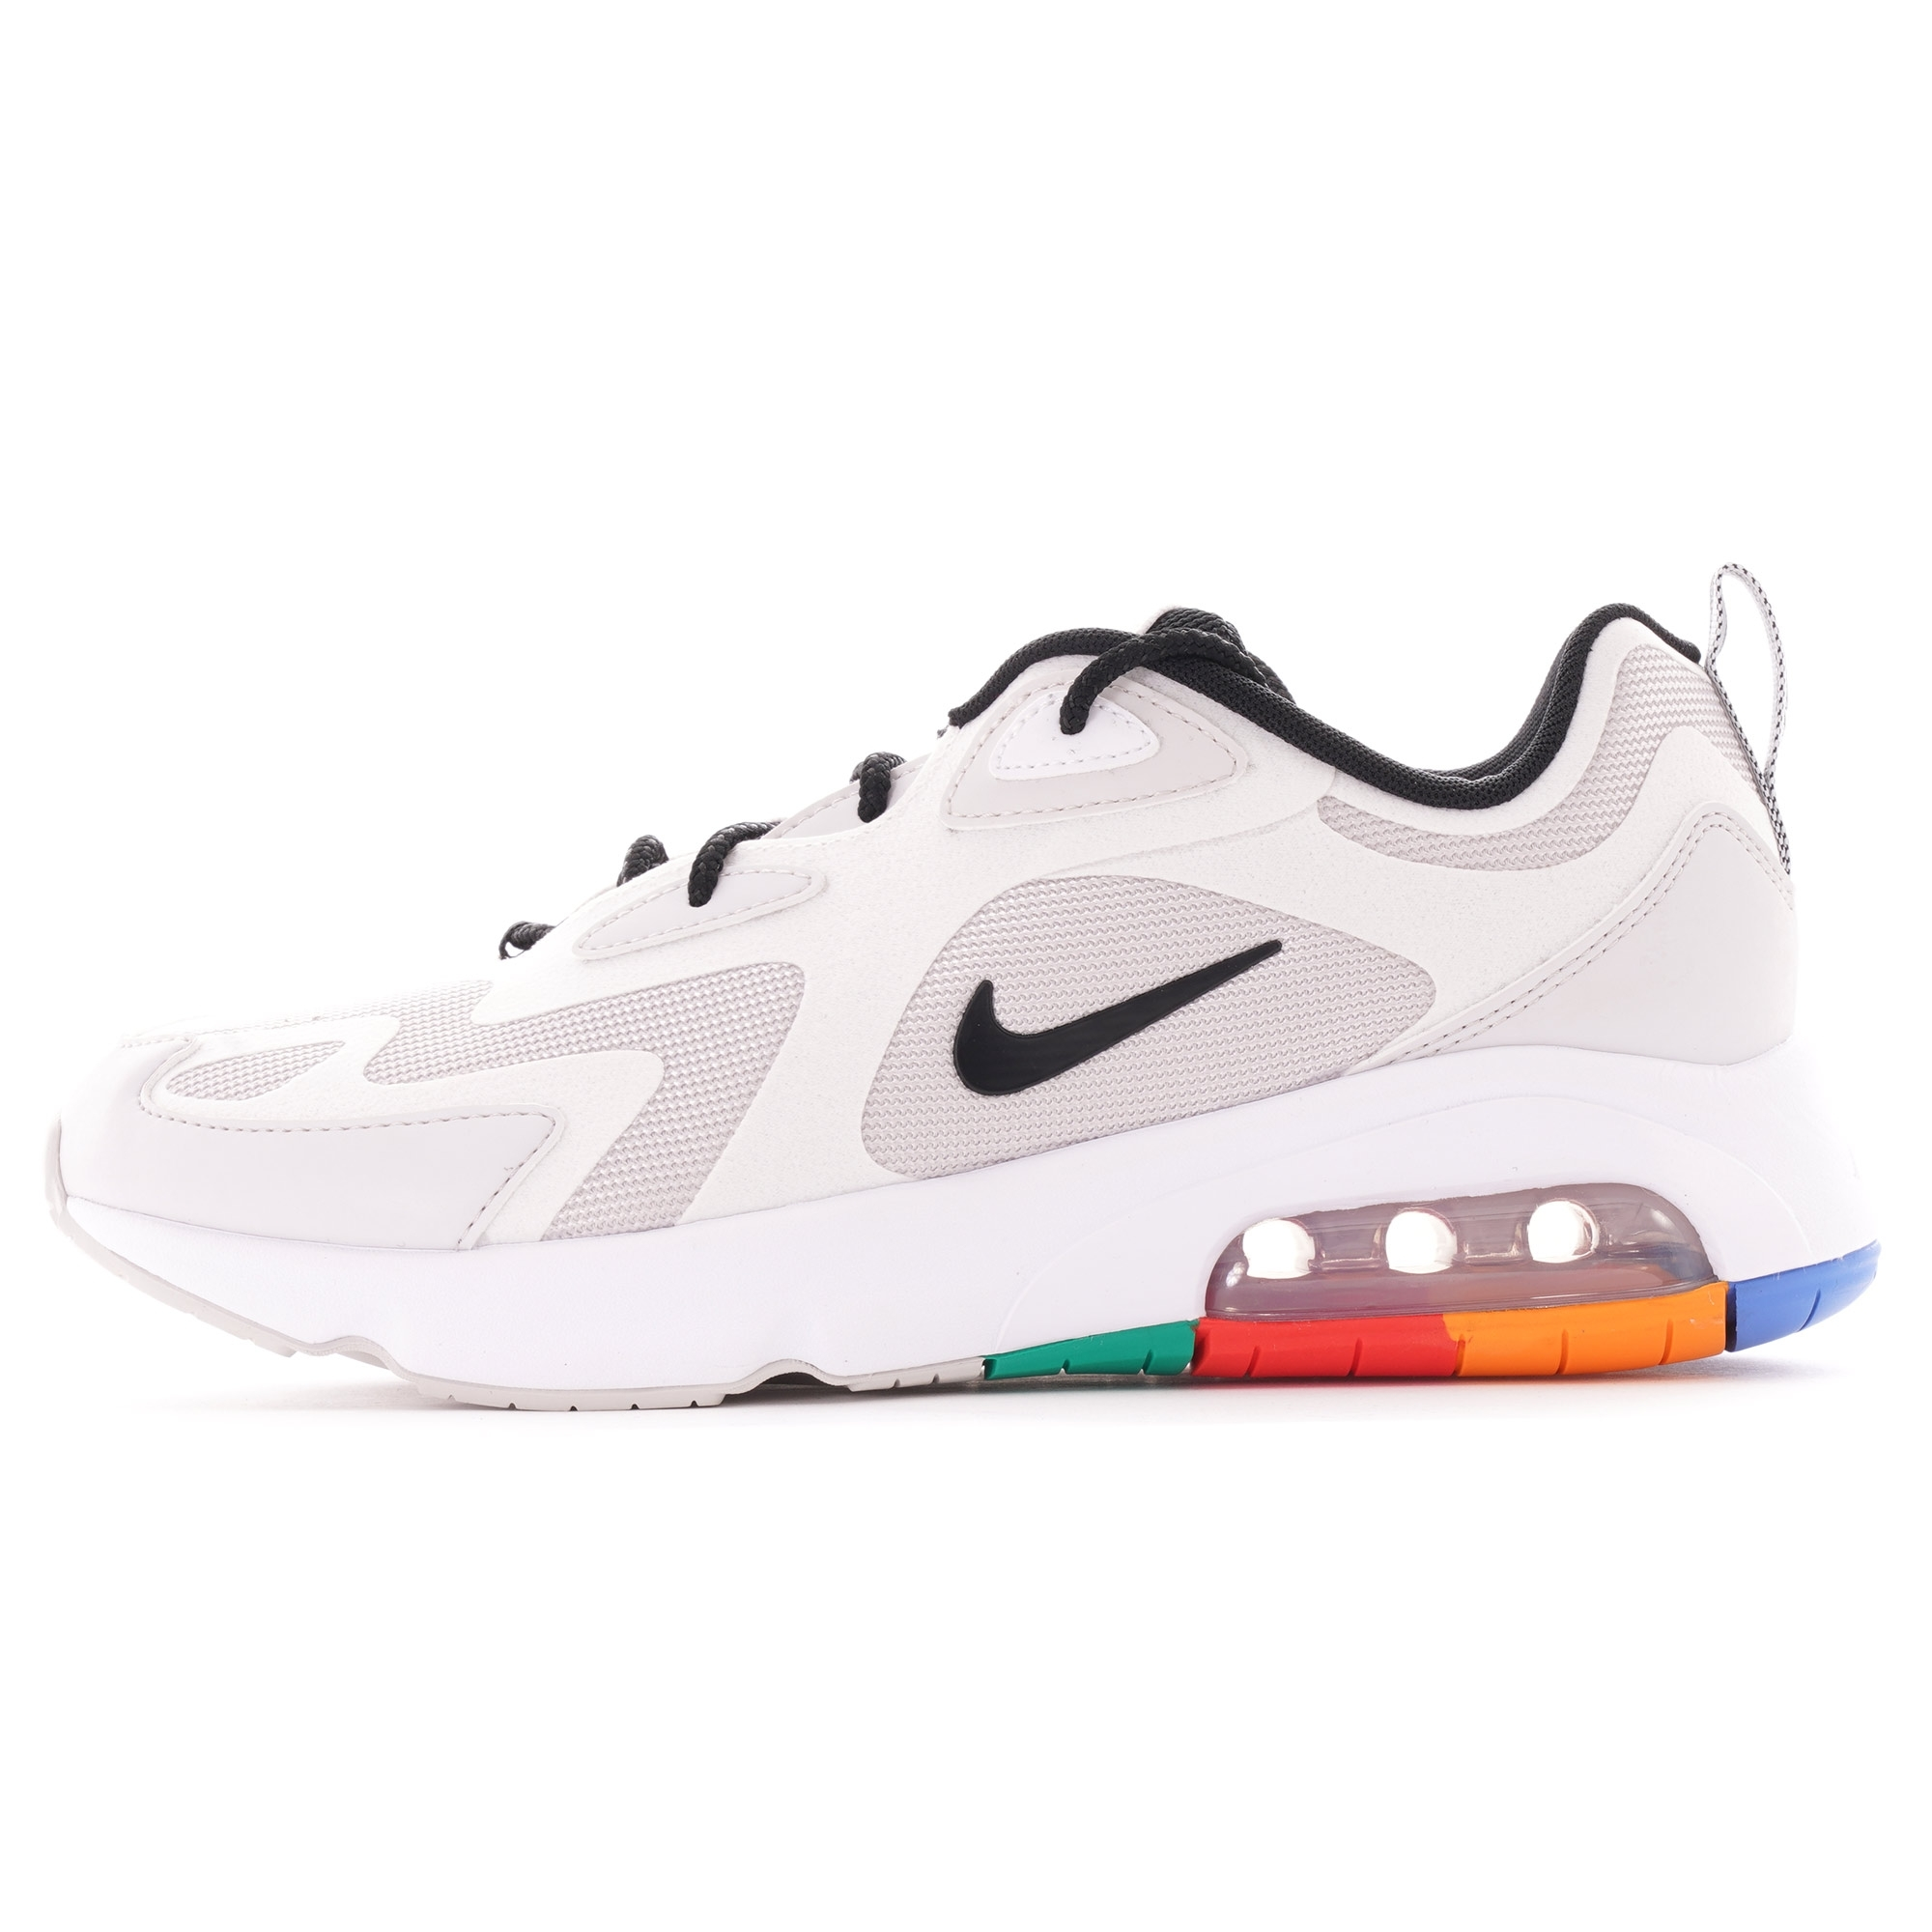 Nike Air Max 200 Shoes Sale Online at Cheap UK Prices